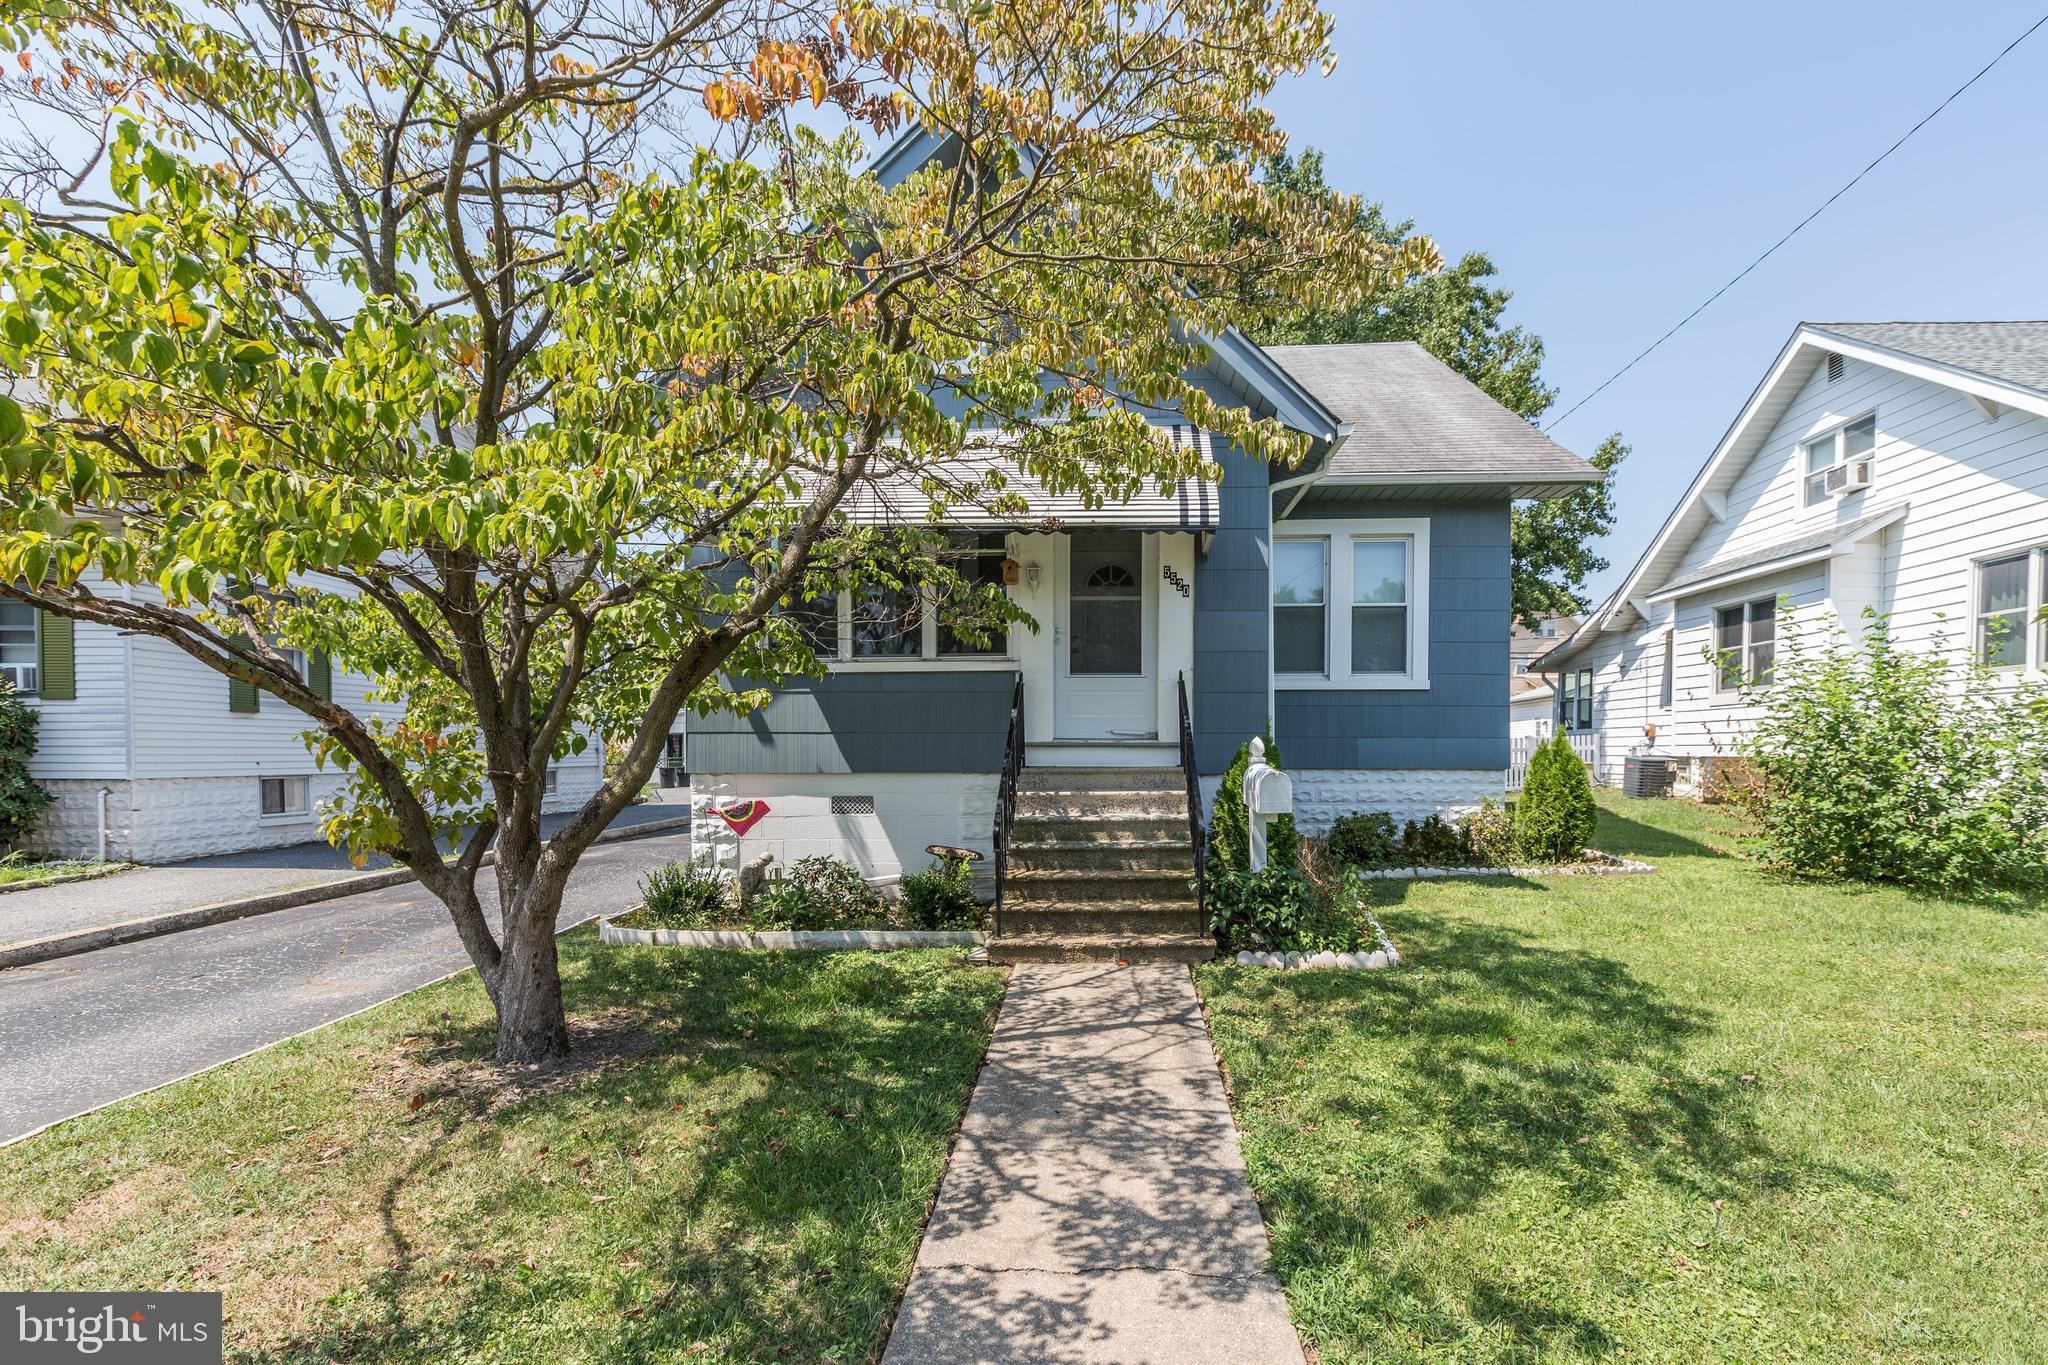 5520 Carville Ave, Baltimore, MD, 21227